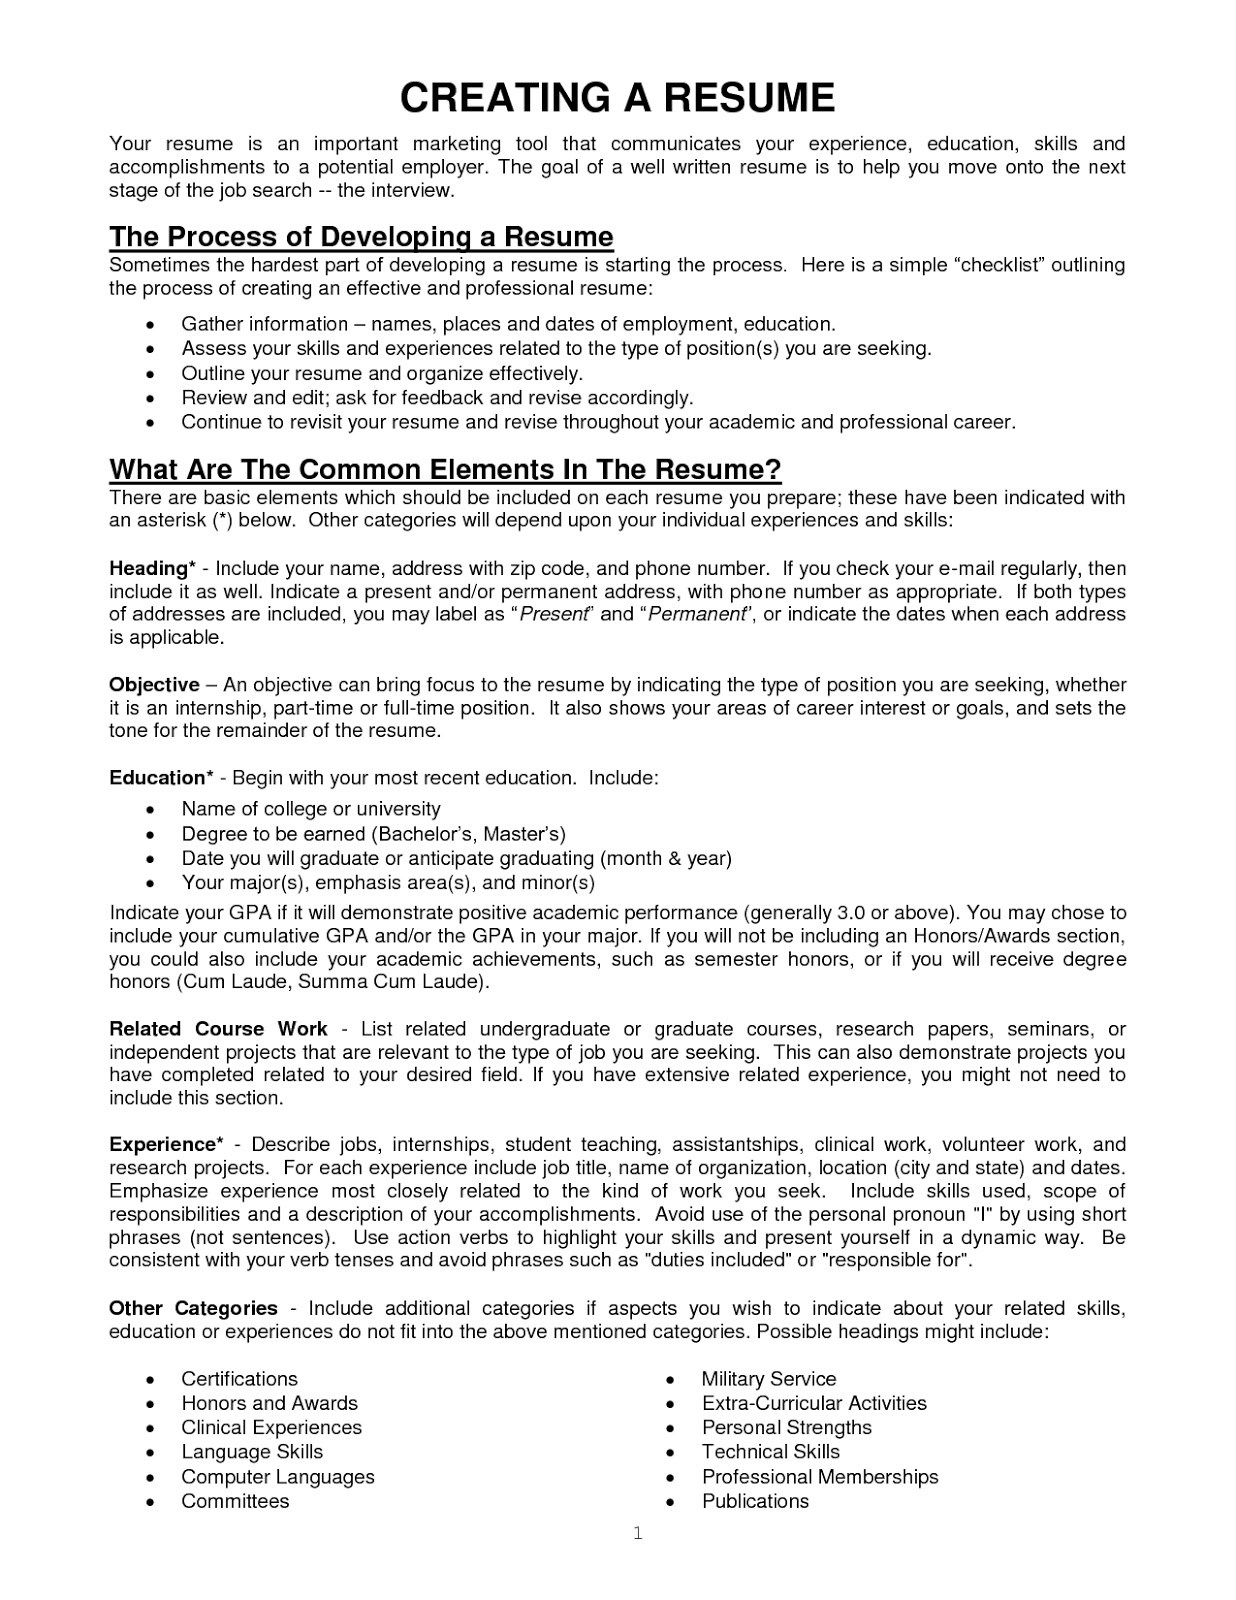 022 How To Make Bibliography Page For Researchr Fascinating Reference List On Resume With Additional References In Example Of Shocking A Research Paper Citation Full